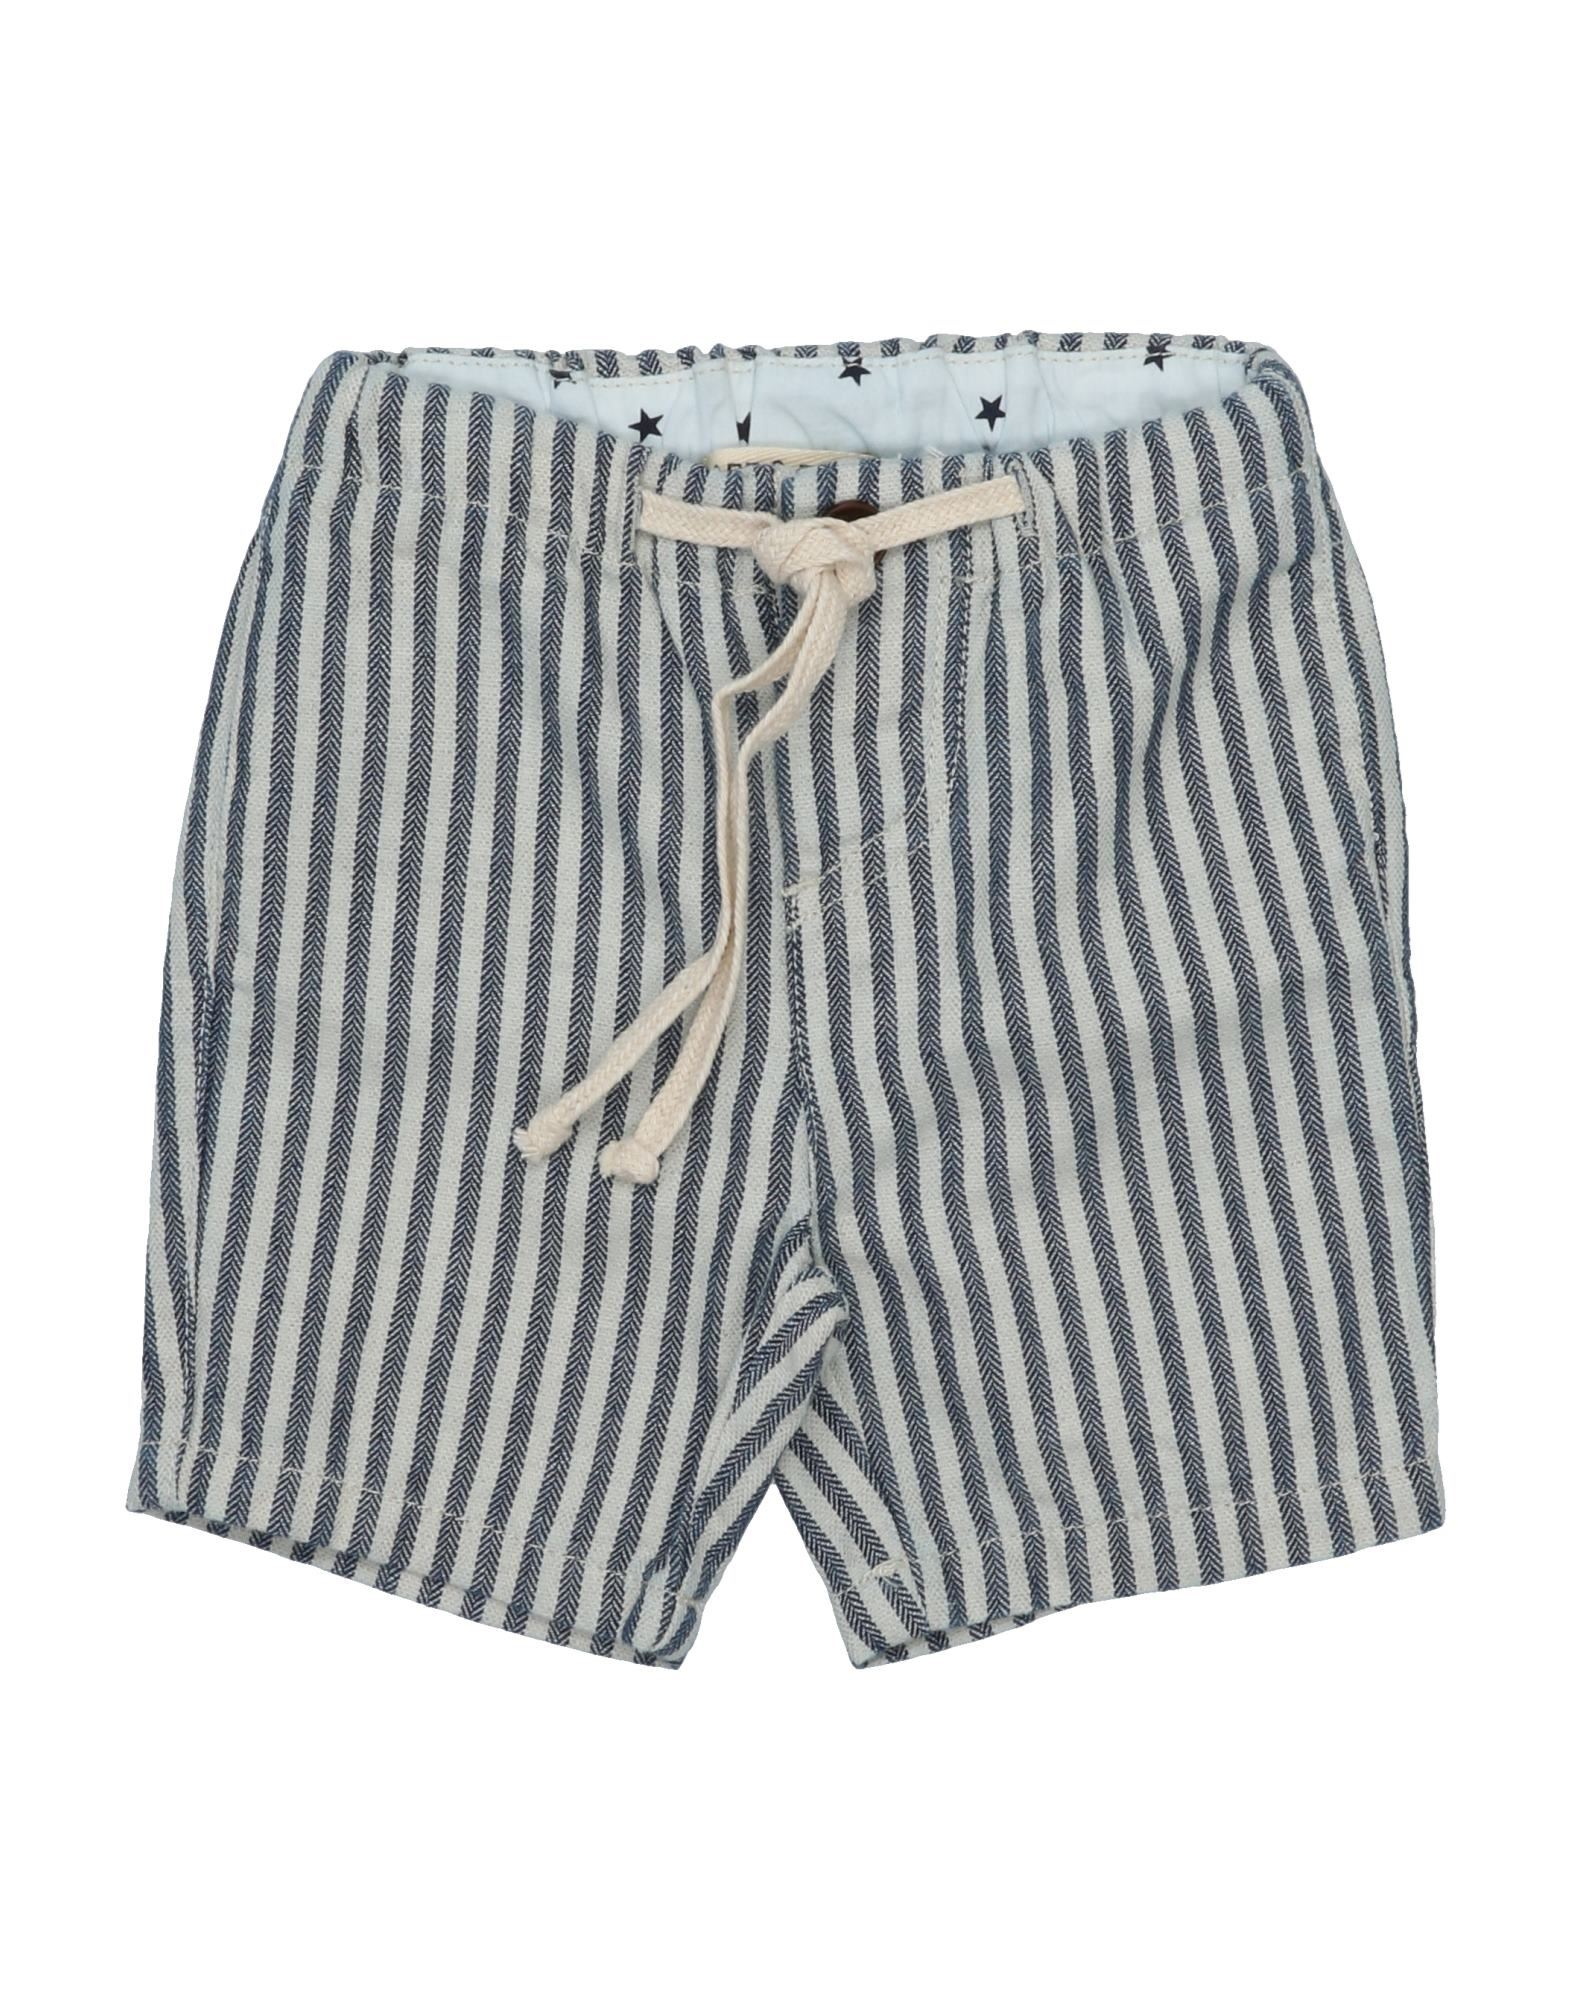 Babe And Tess Kids' Bermudas In Gray